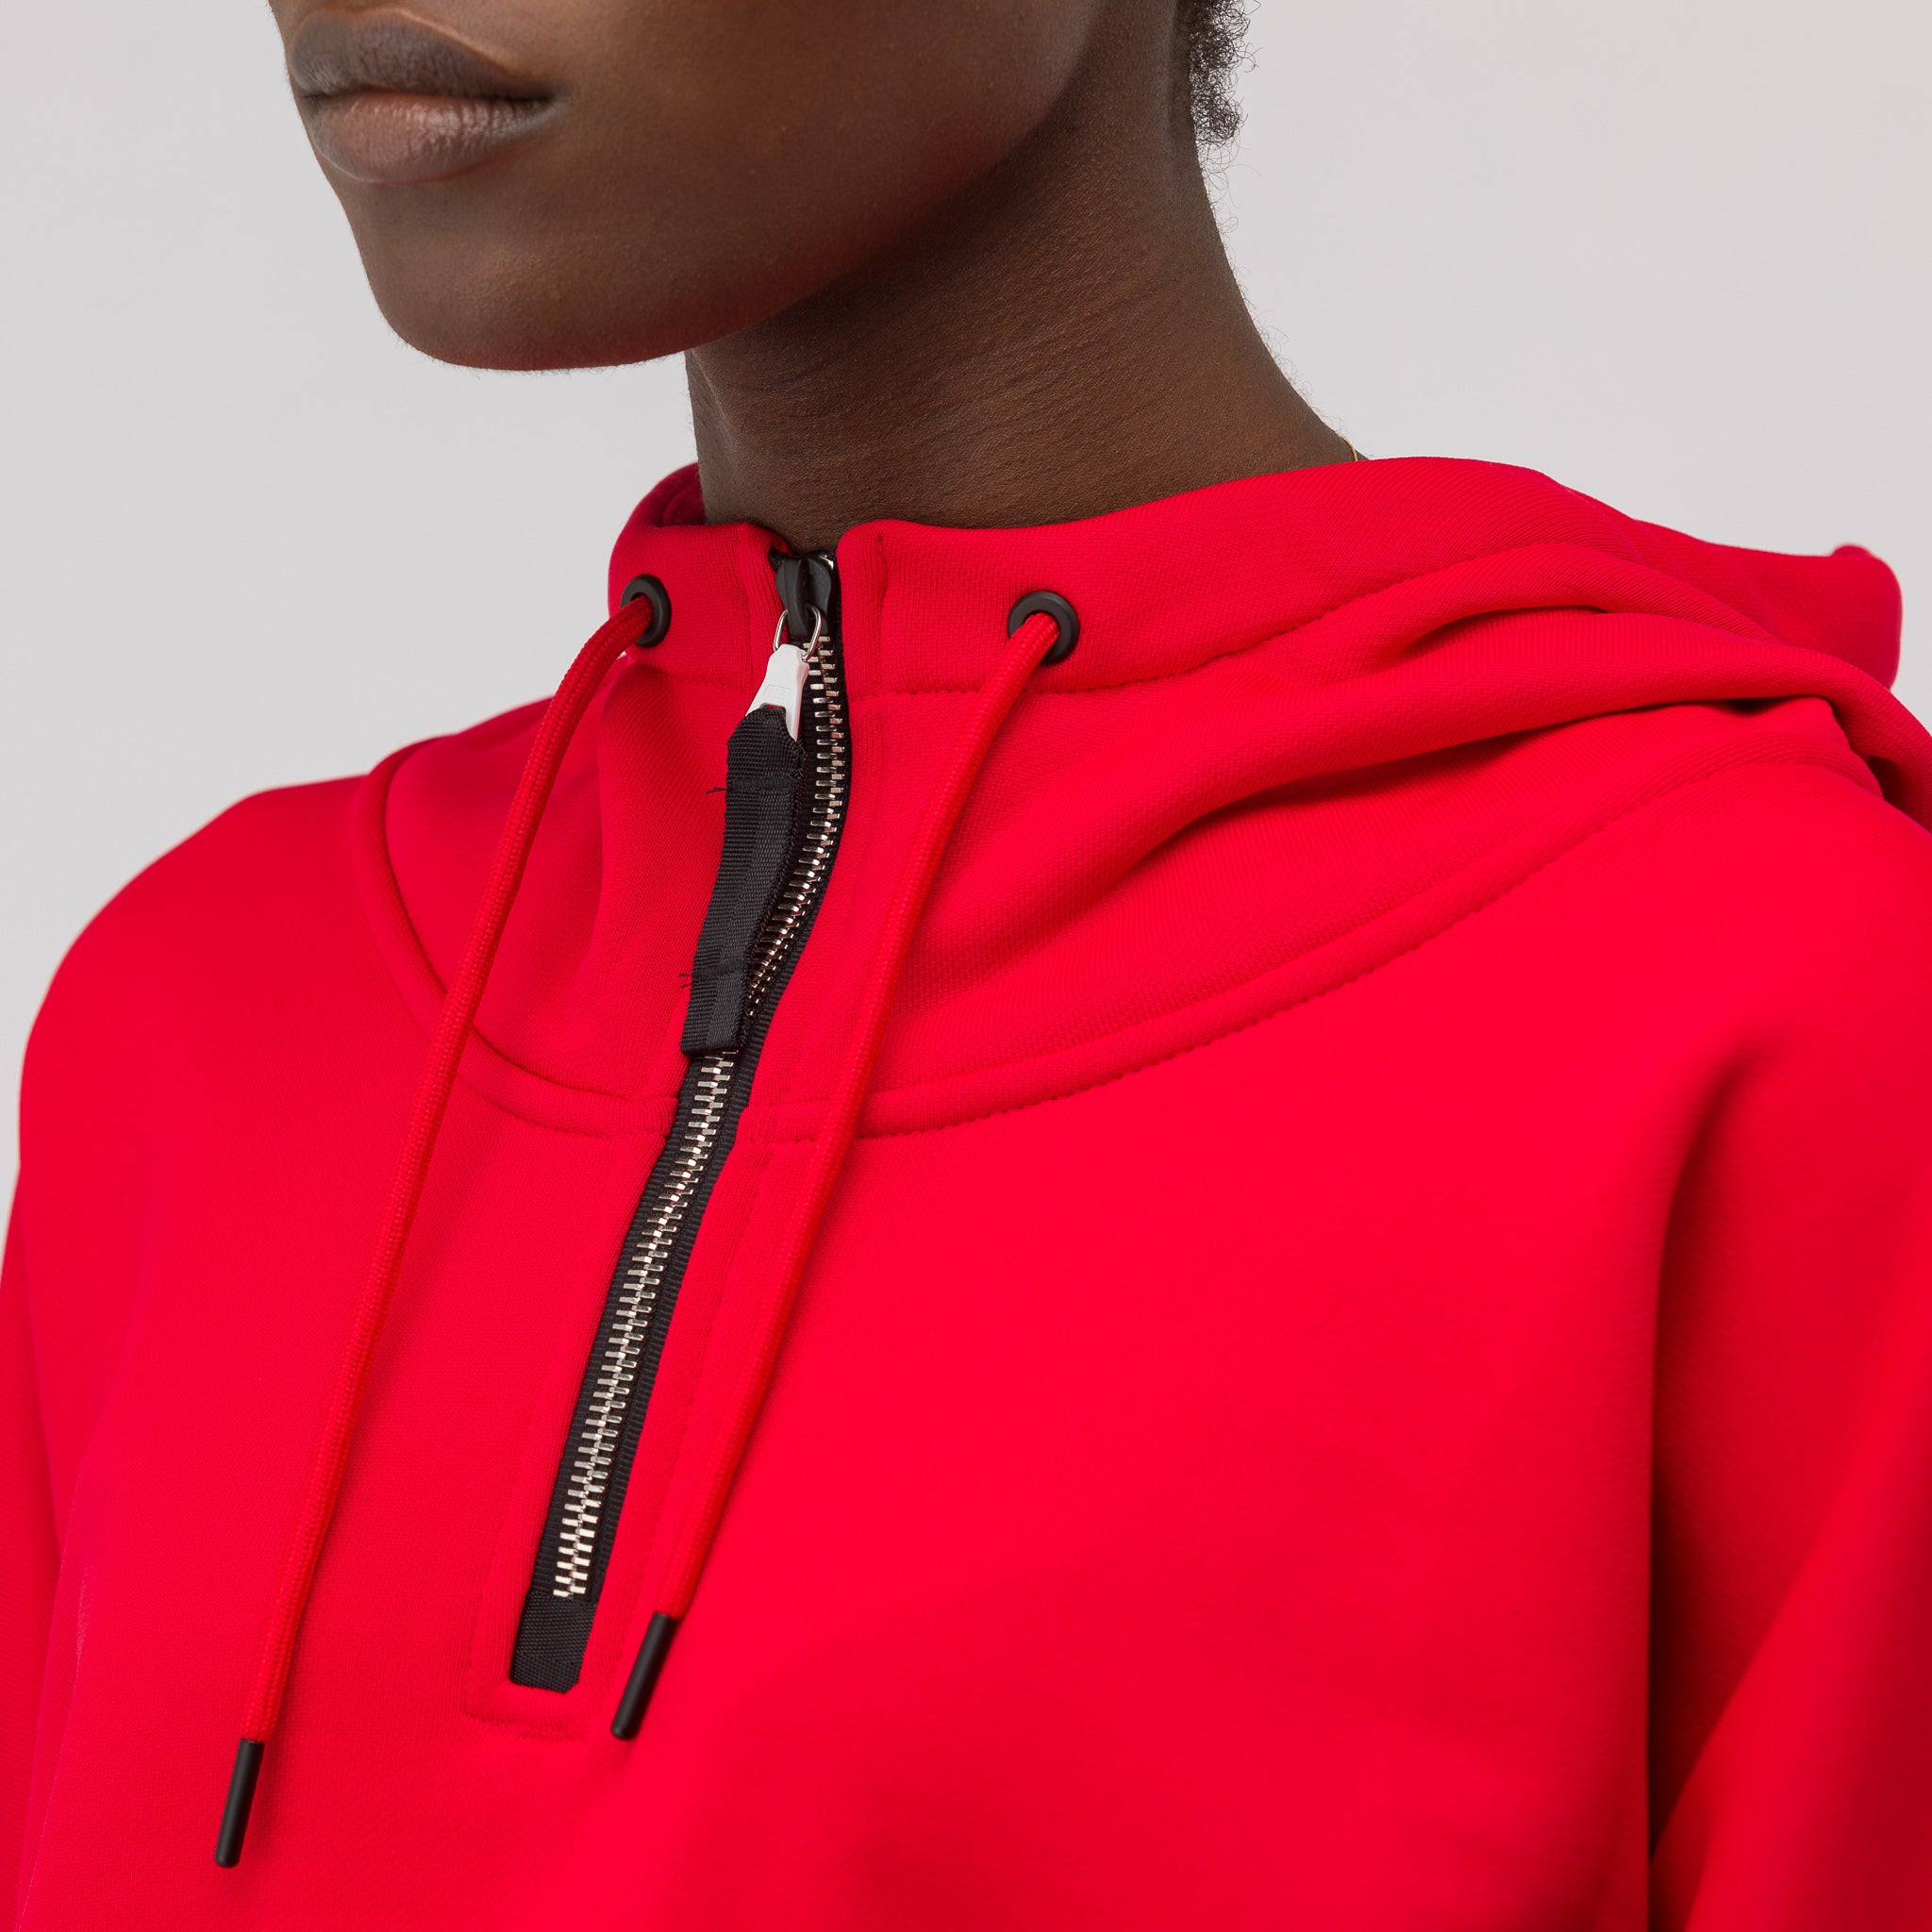 Women's Hooded Long Sleeve Top in Red